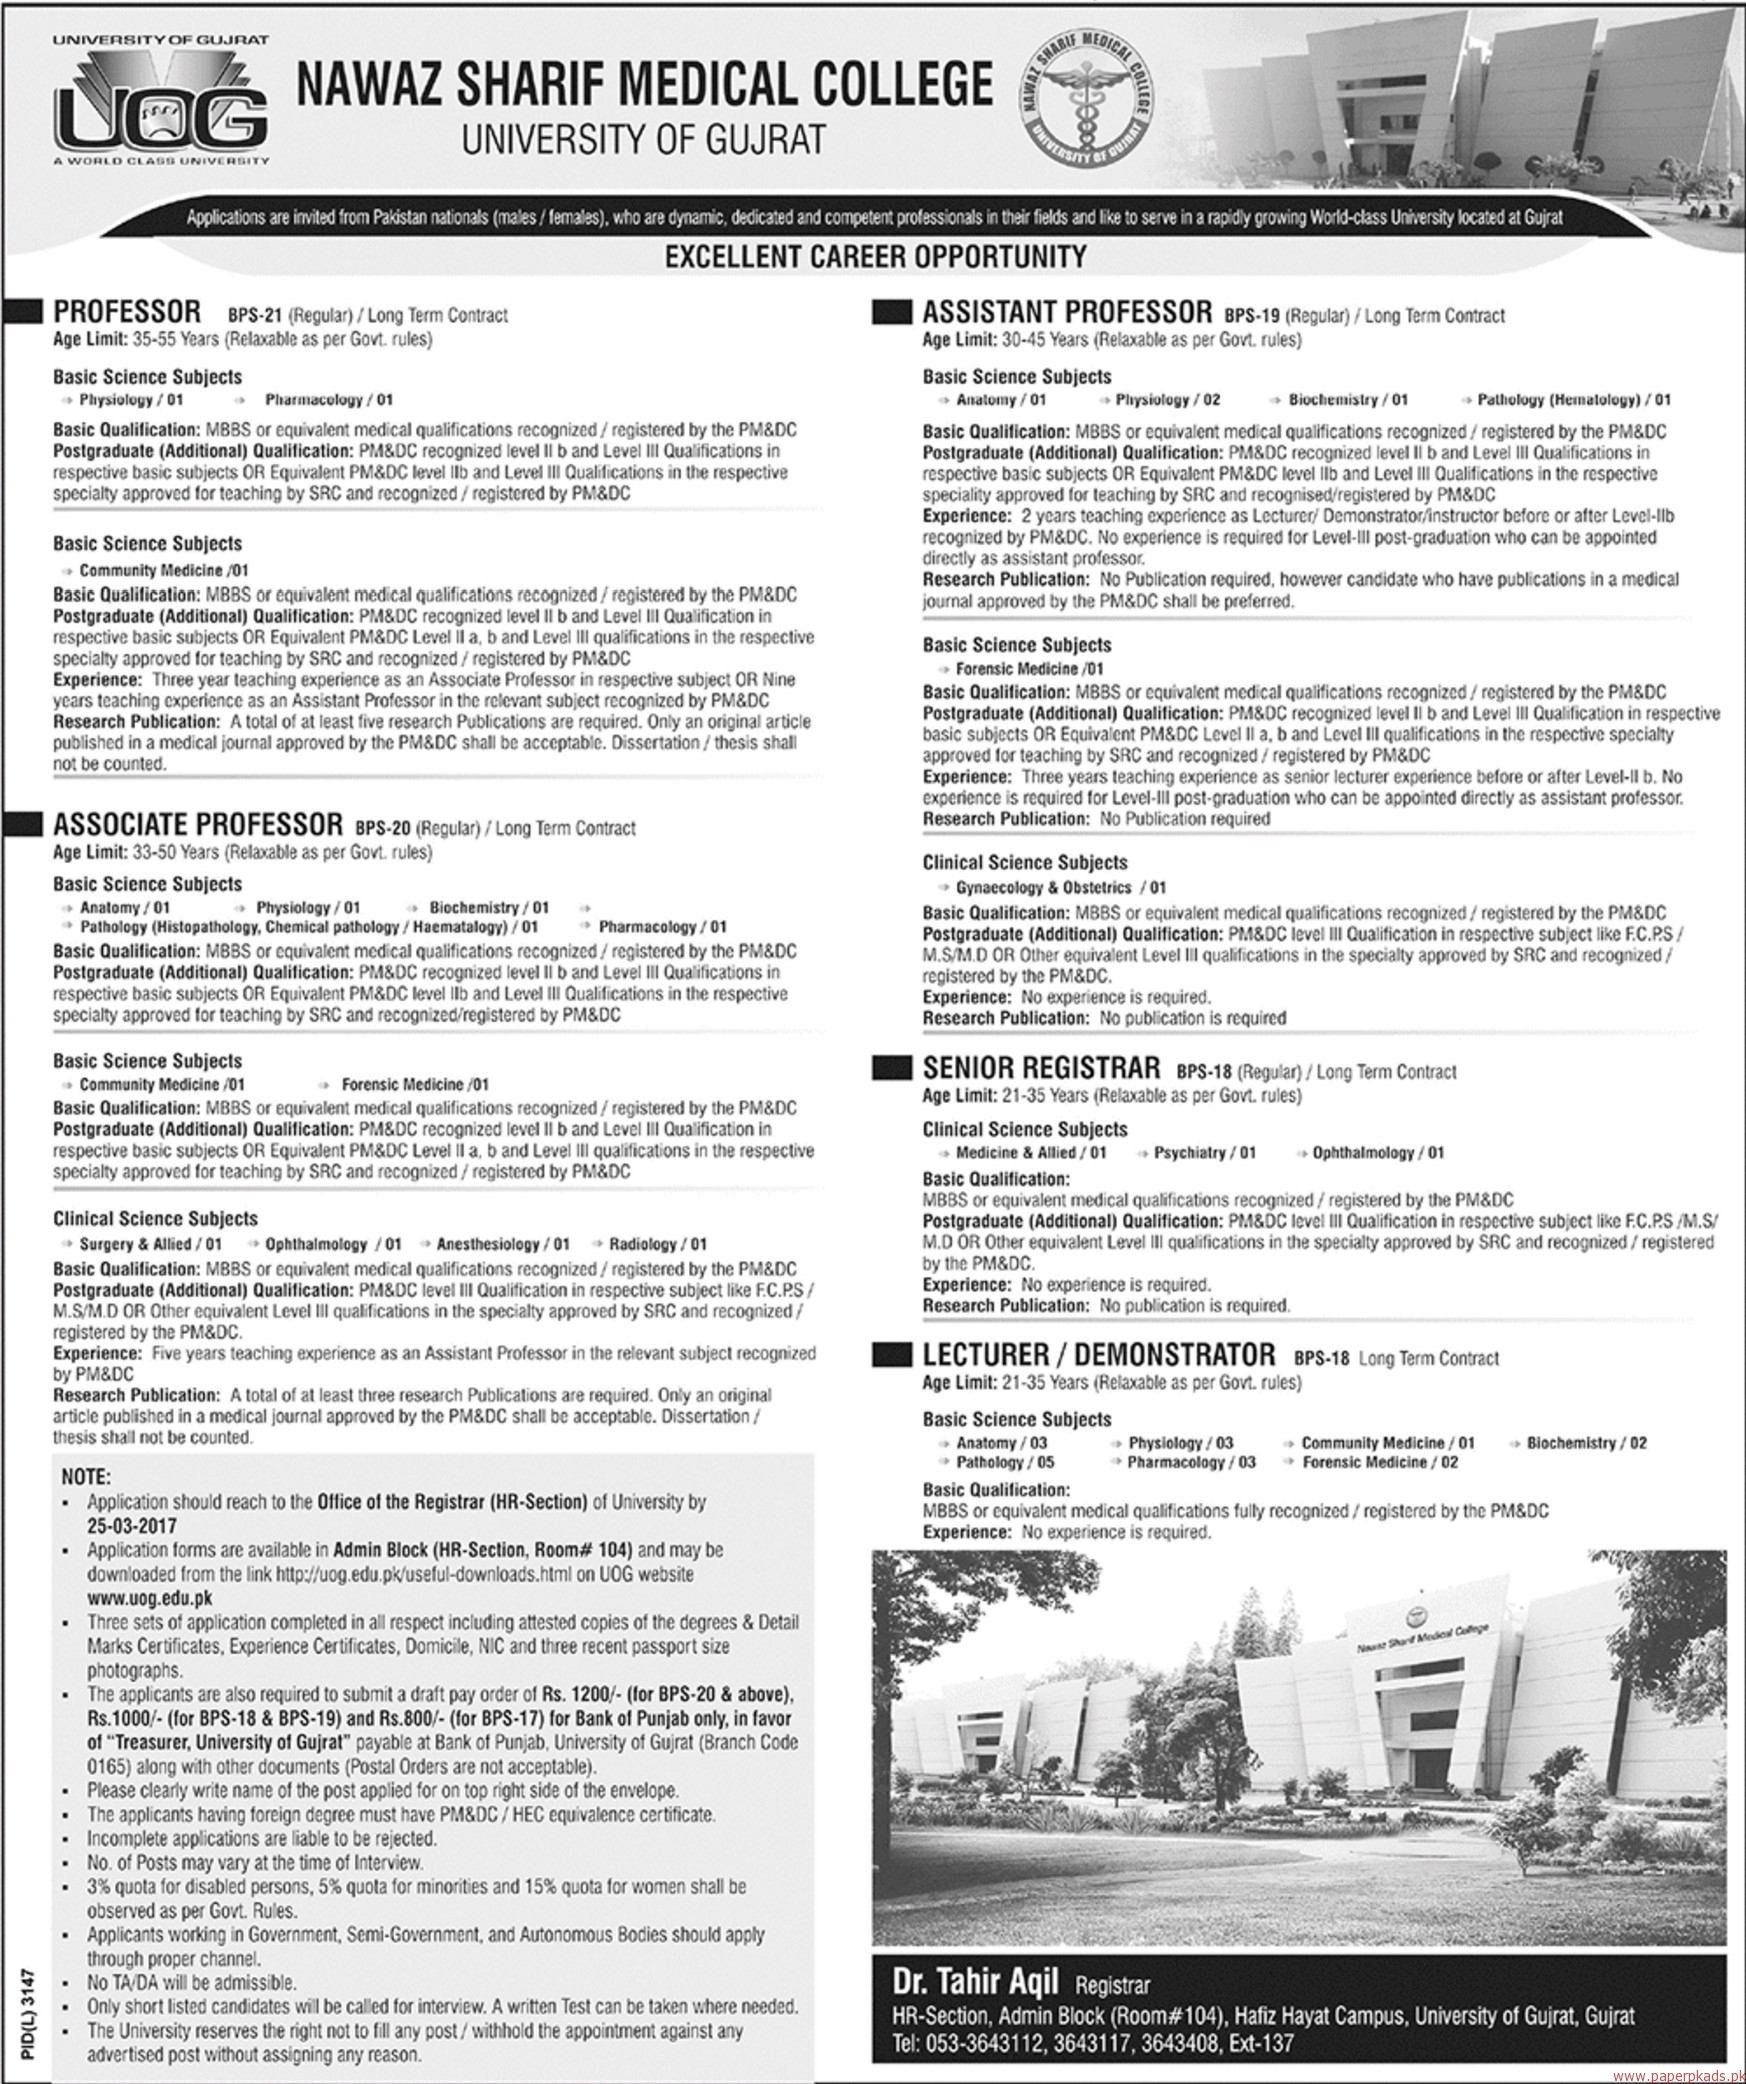 nawaz sharif medical college jobs jang jobs ads 09 2017 related articles